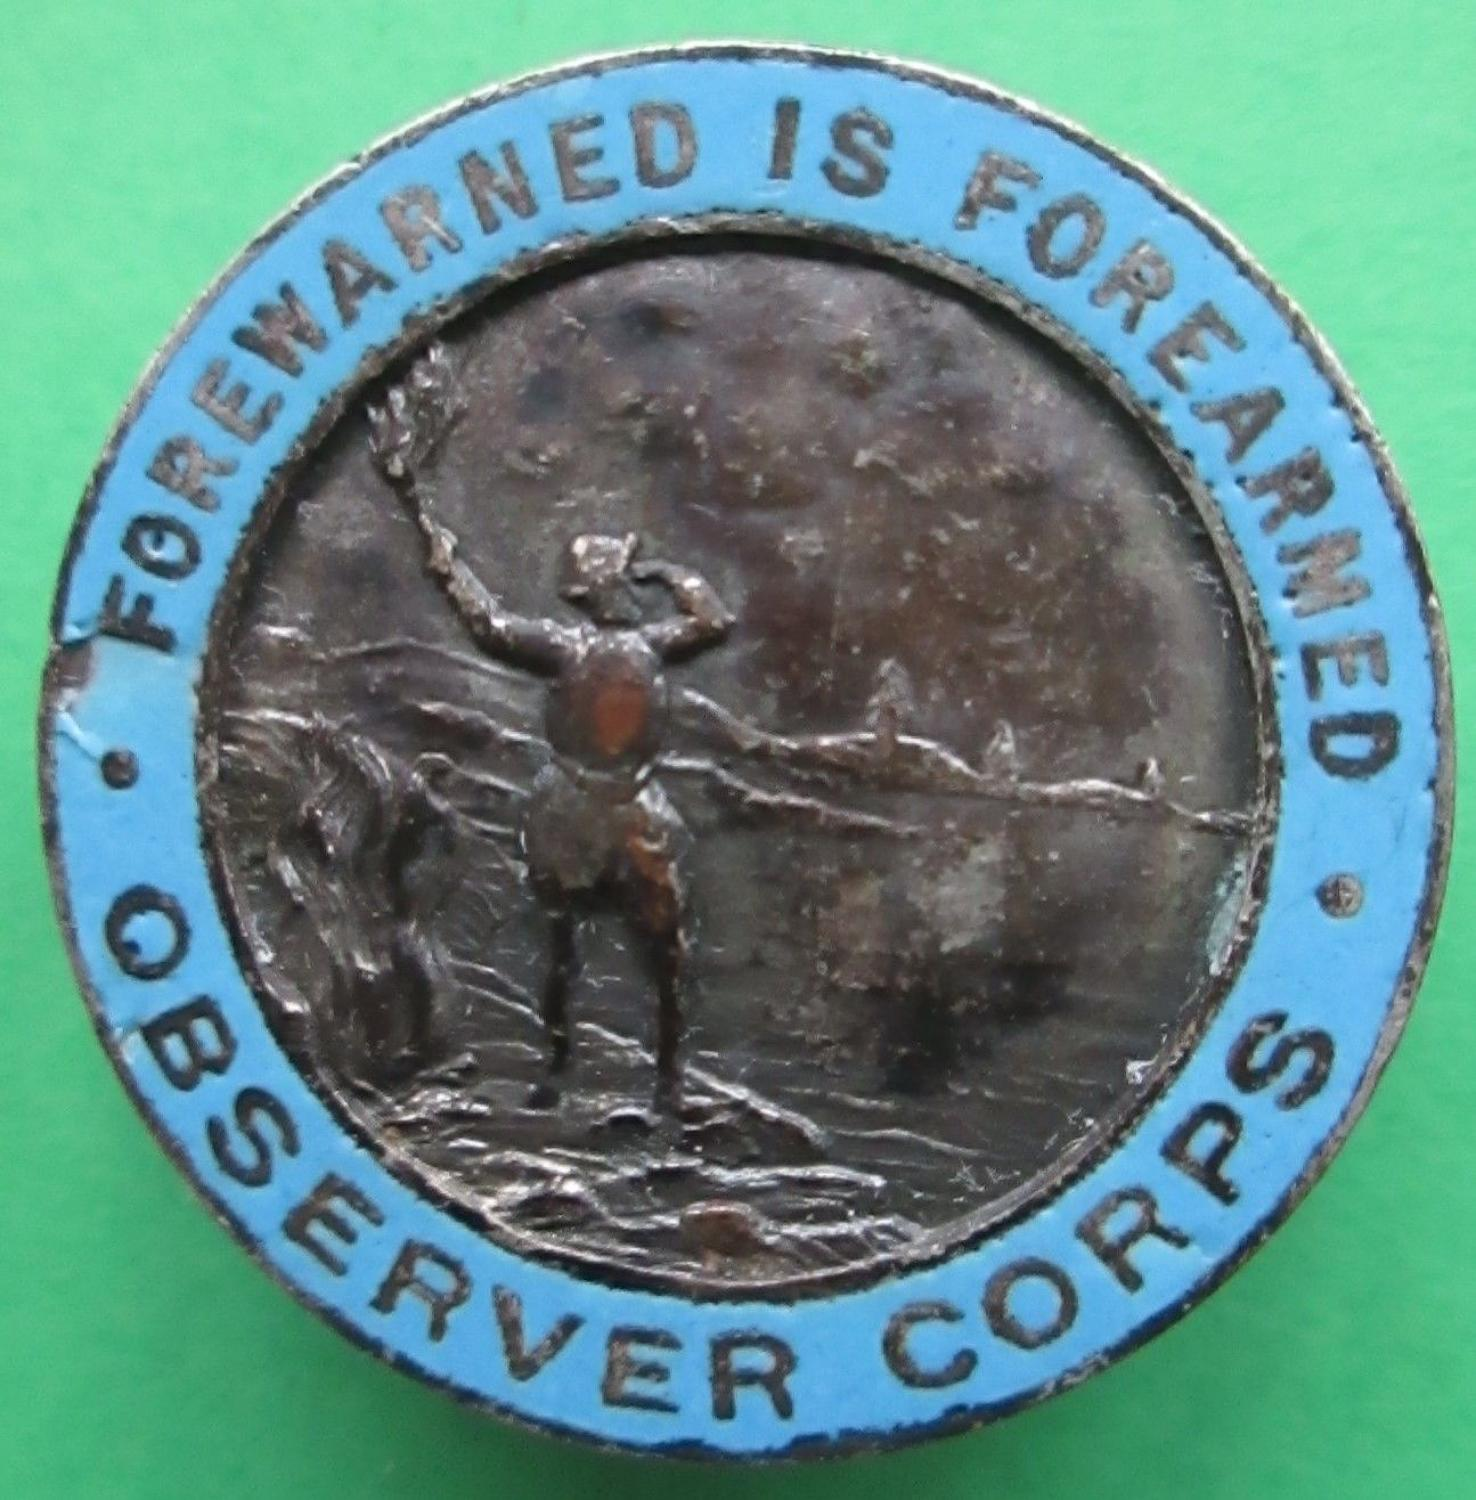 A WWII PRE ROYAL EXAMPLE OF THE OBSERVER CORPS LAPEL BADGE